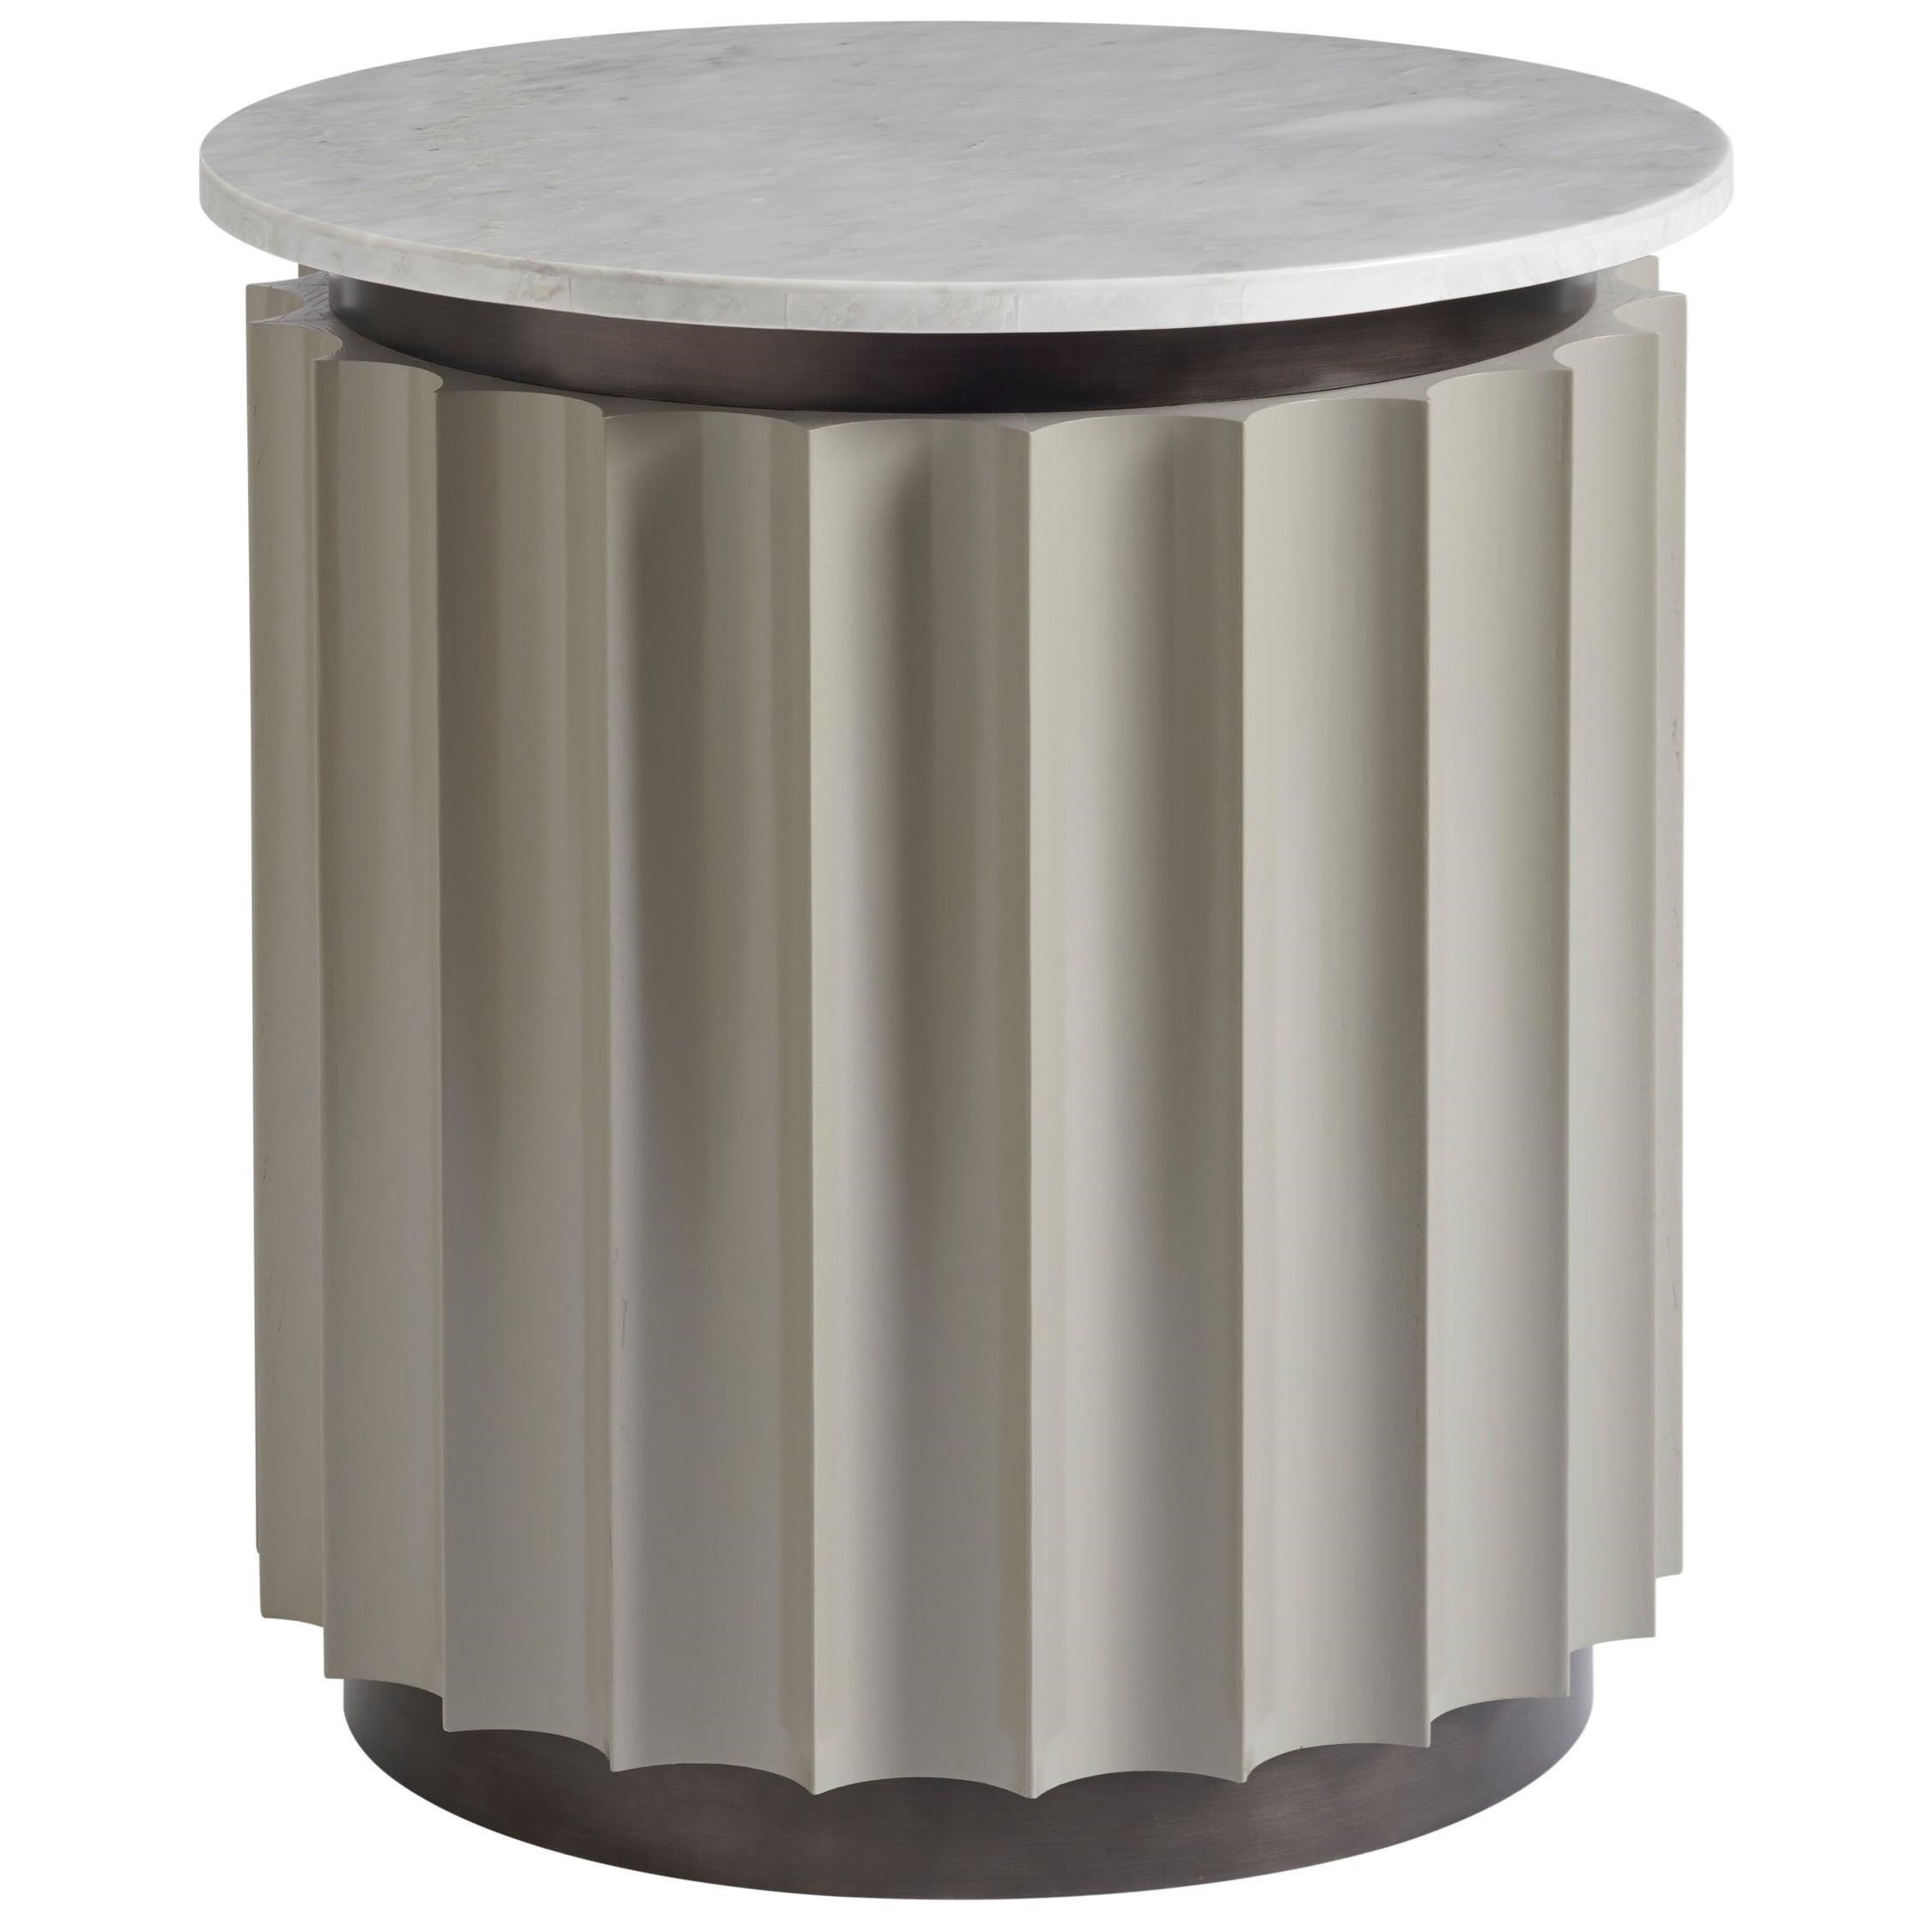 Nina Magon 941 Rockwell Round End Table by Universal at Stoney Creek Furniture